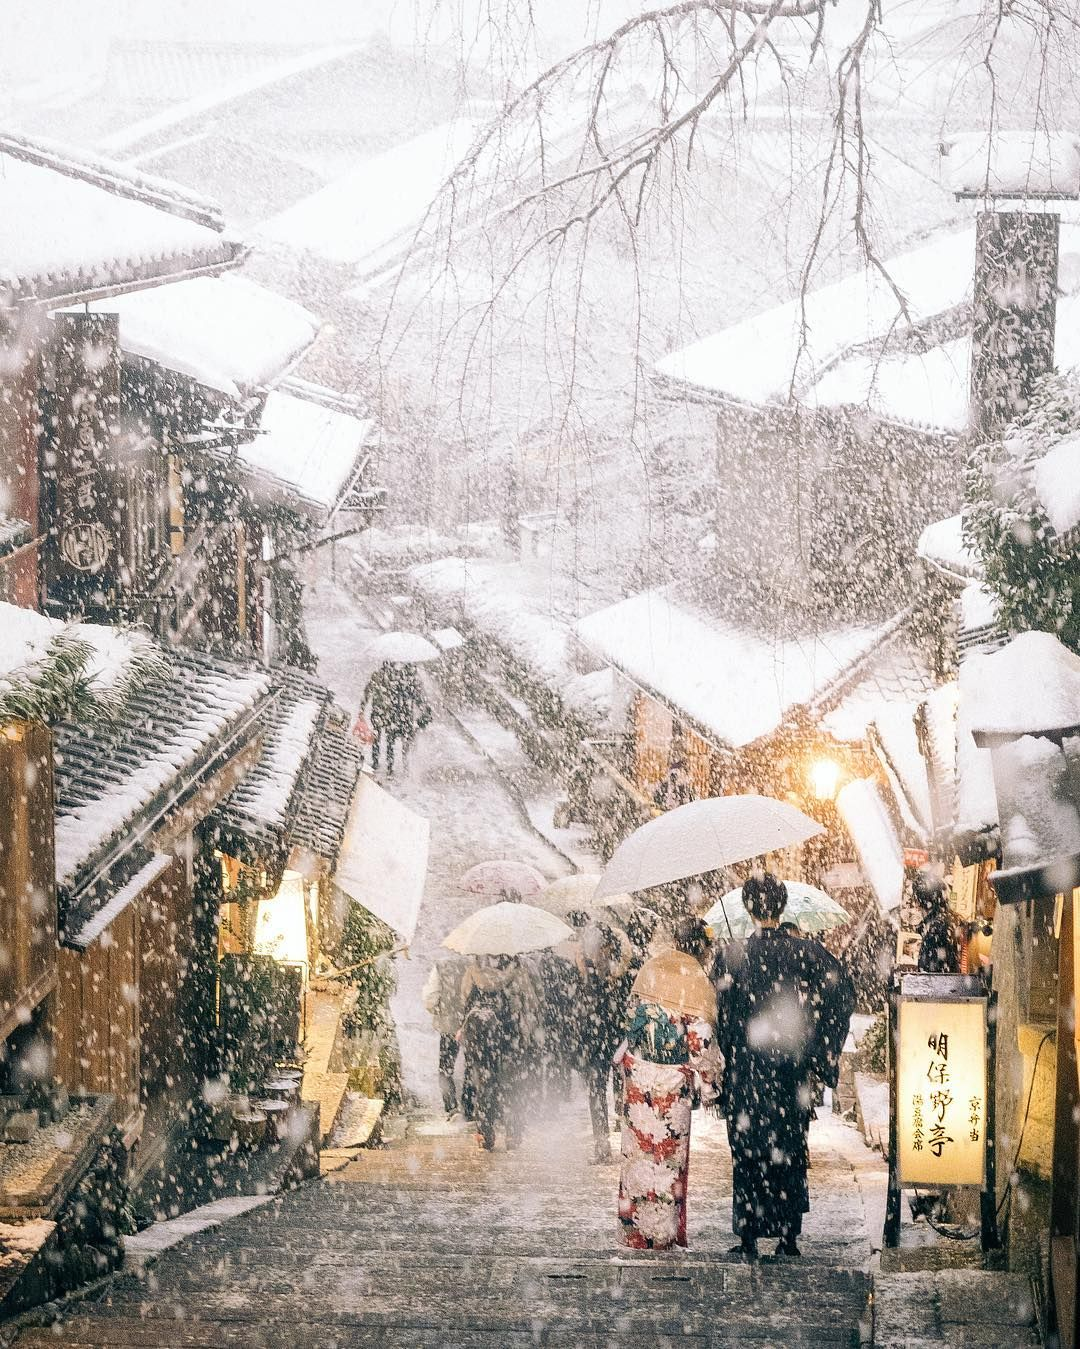 In The Snowing Town - Kyoto, Japan